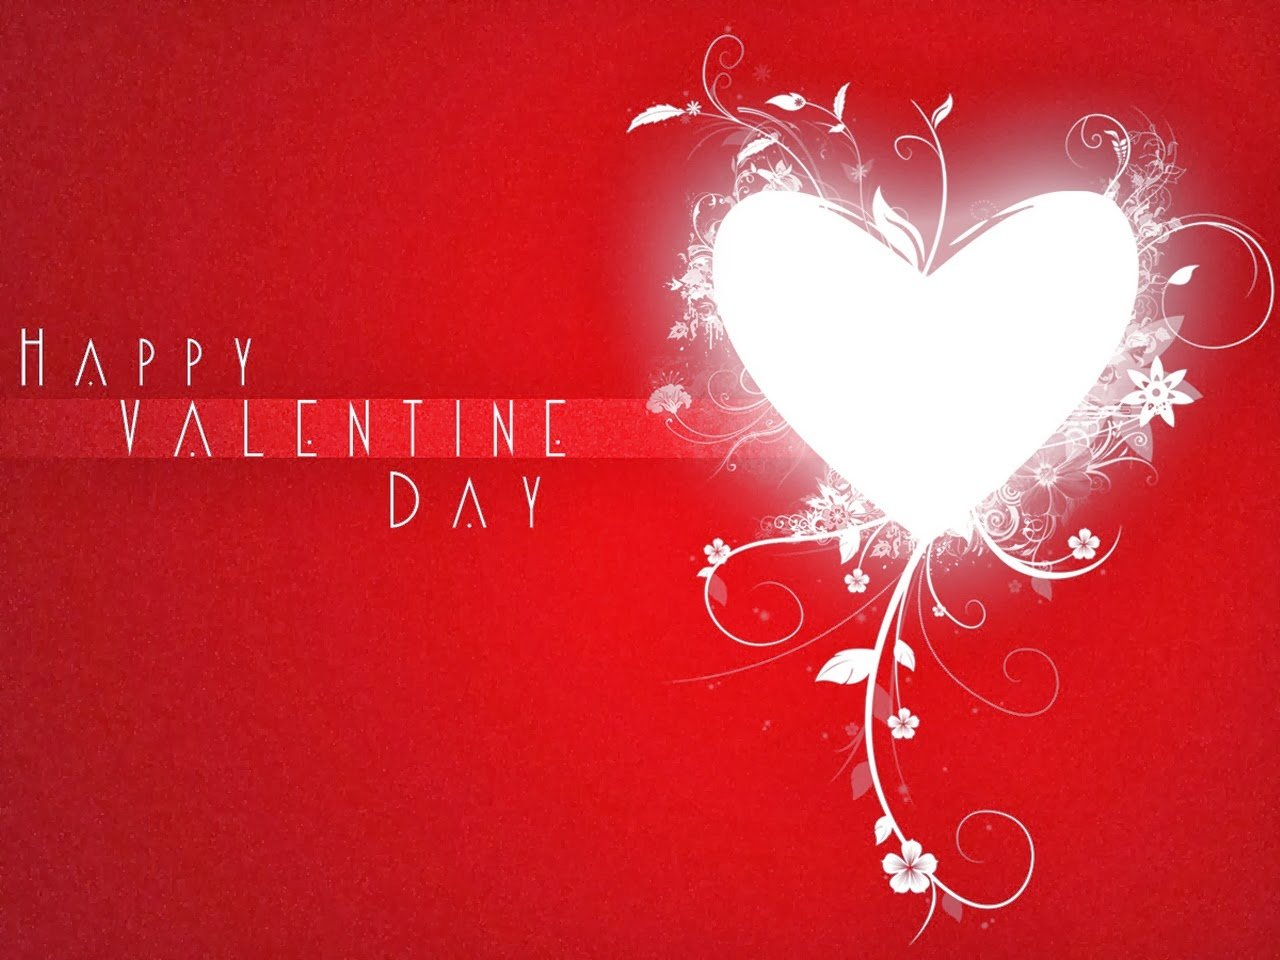 Valentines day Wallpaper 2014   TatoClub 1280x960